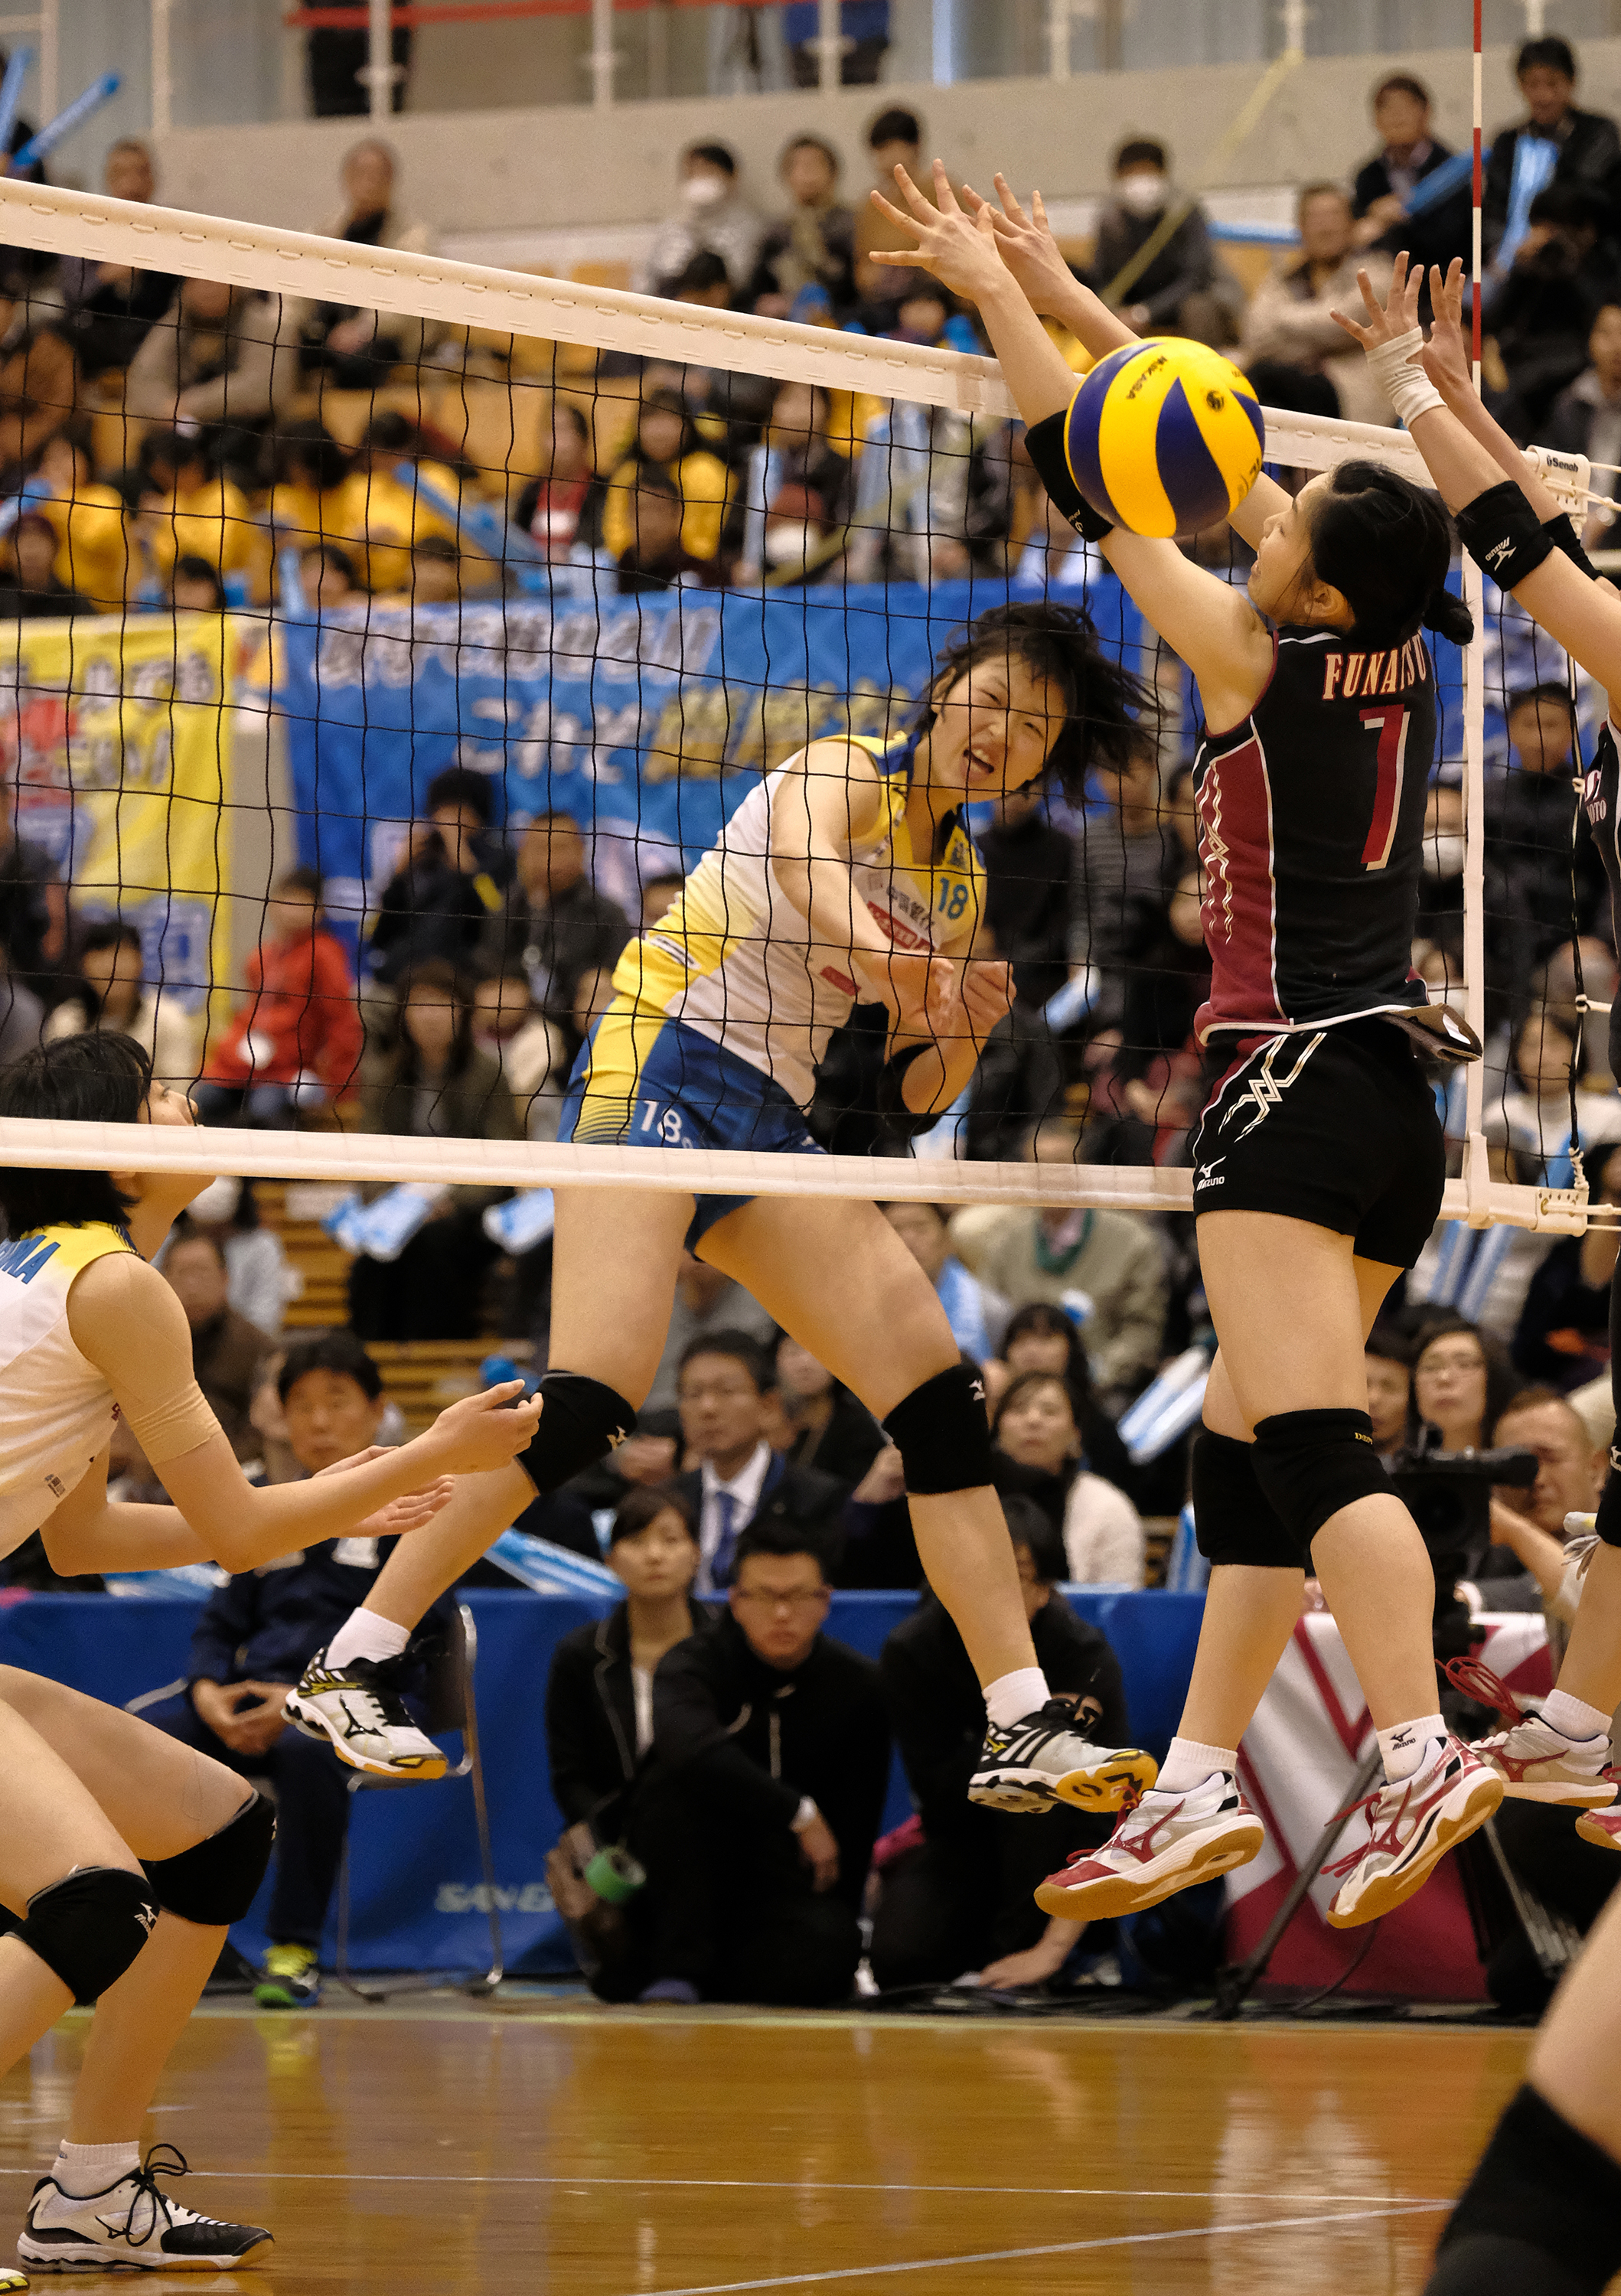 Fuji X-H1 - Sample Image - VolleyBall